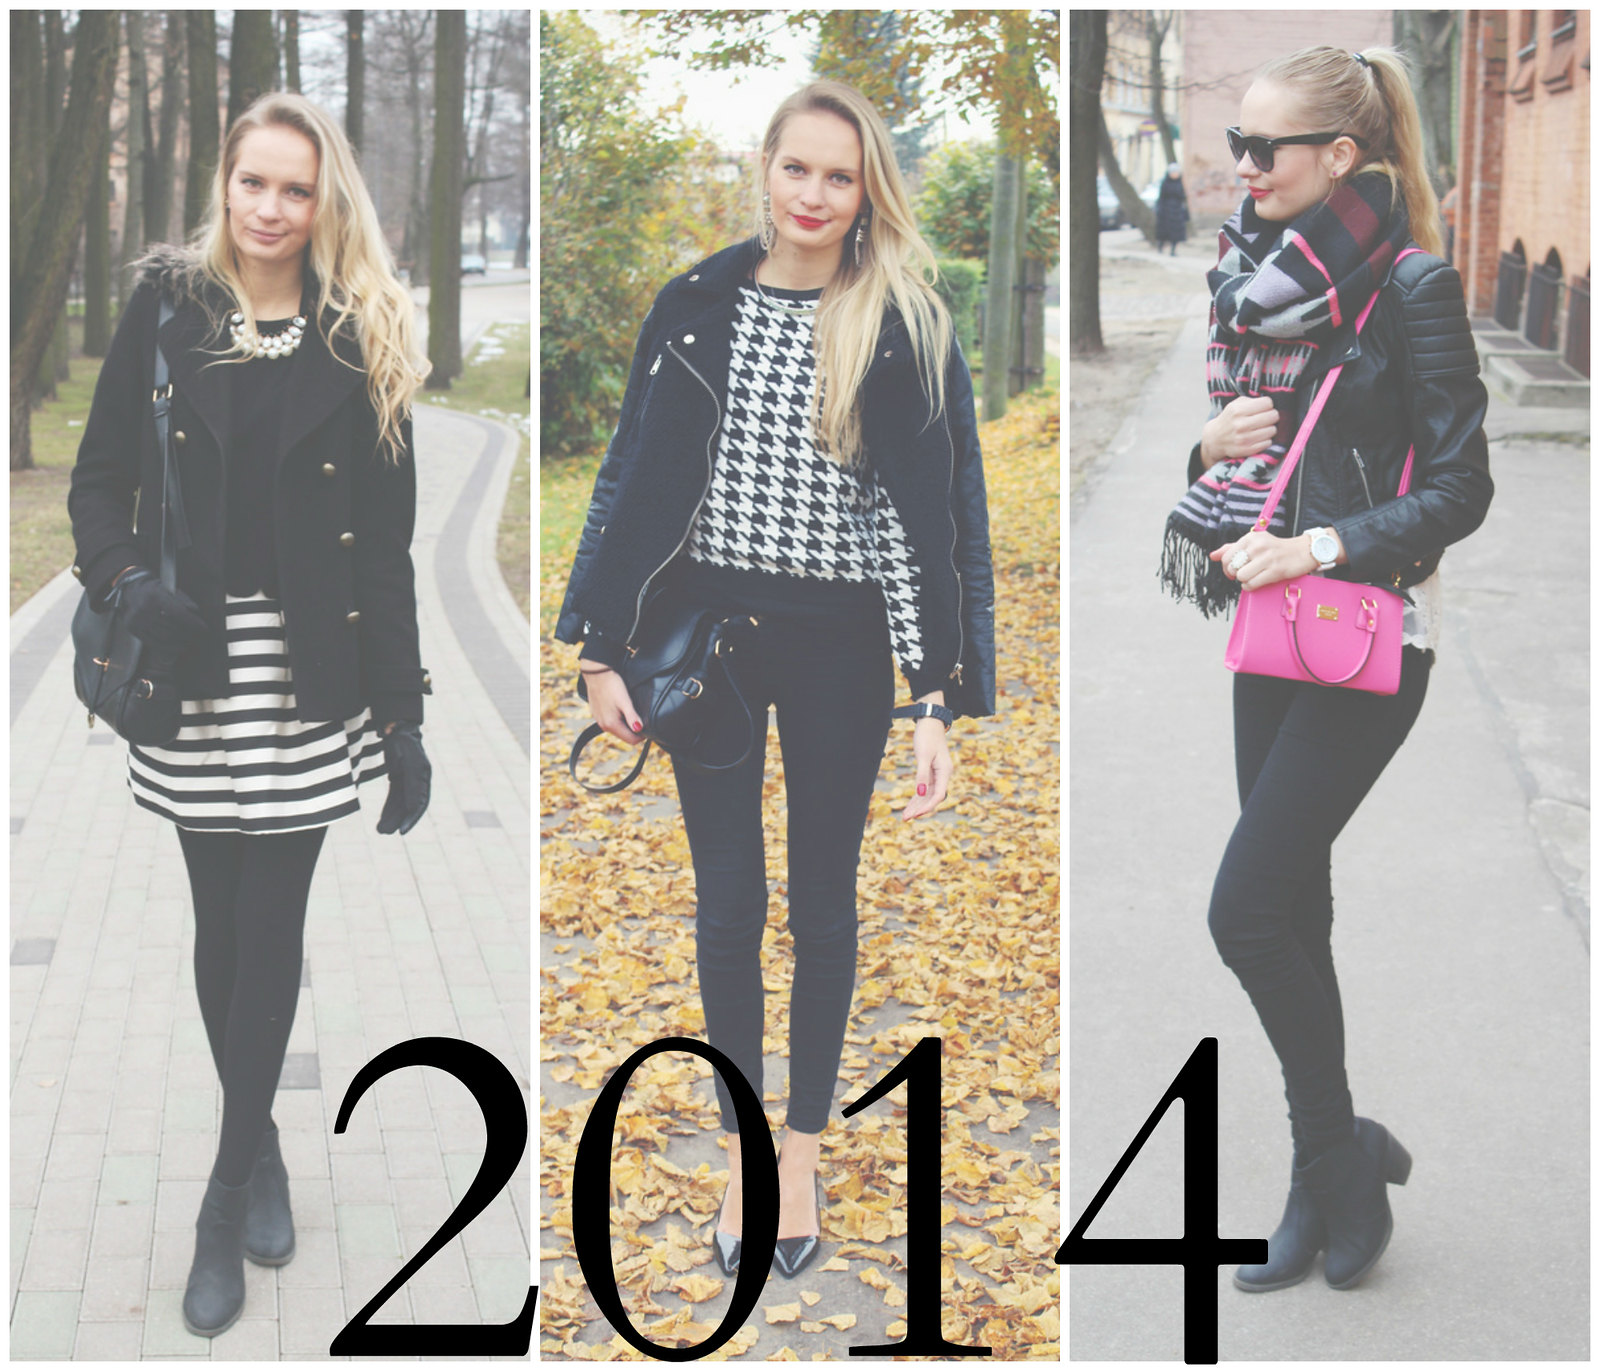 2014 outfits